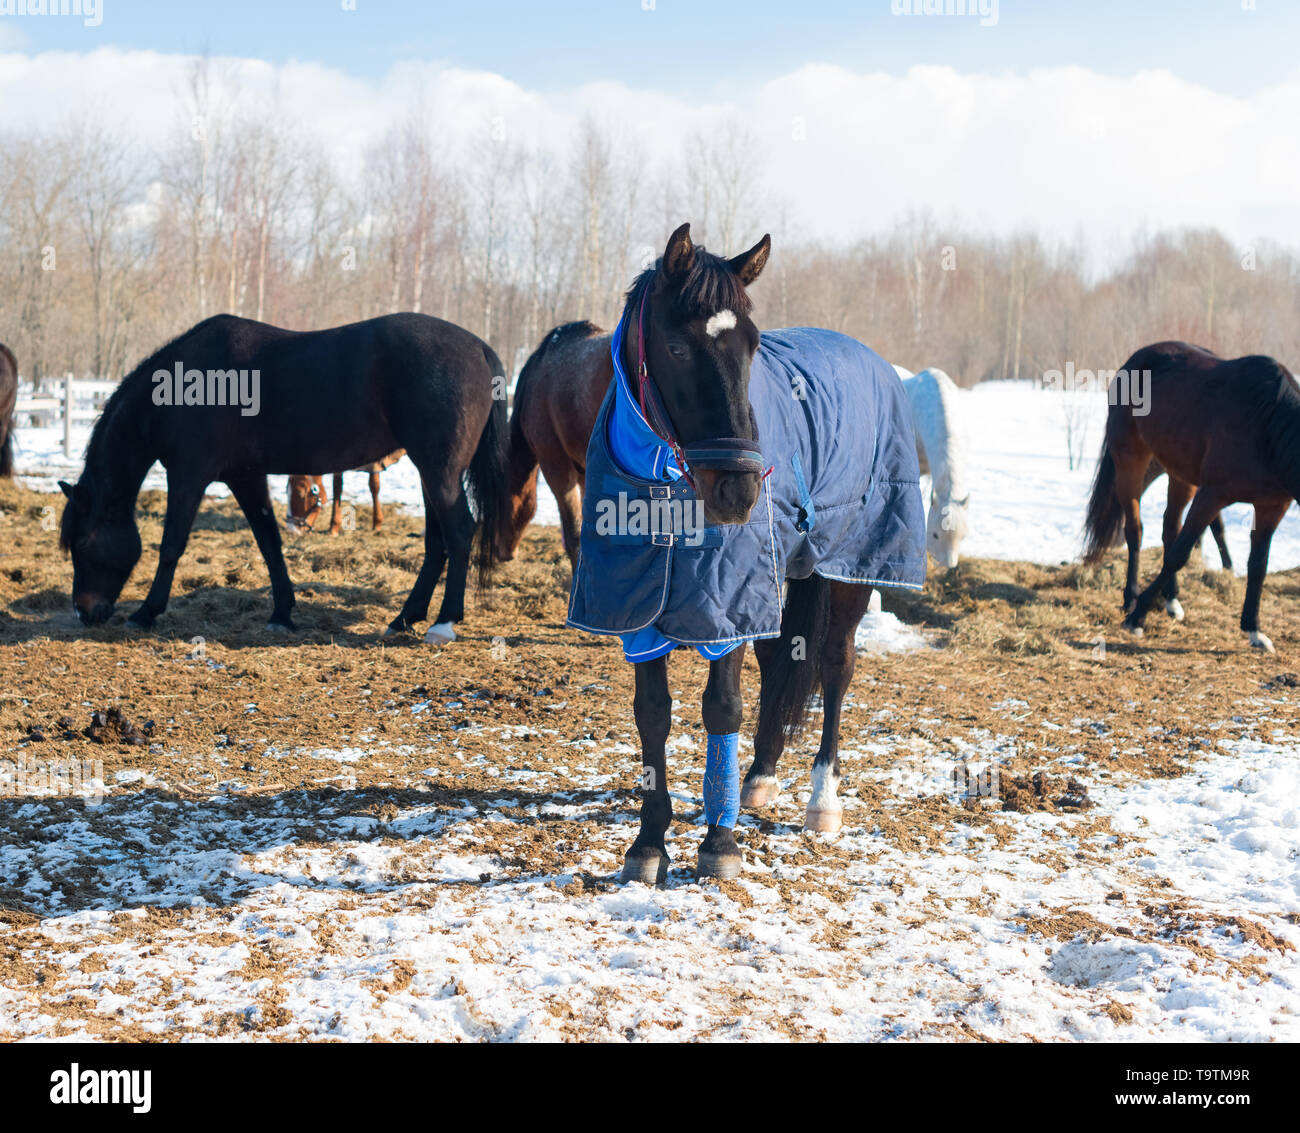 The bay horse with the blue blanket and the halter is in outdoors. The herd of the mares and the geldings is on the ranch in rural. - Stock Image